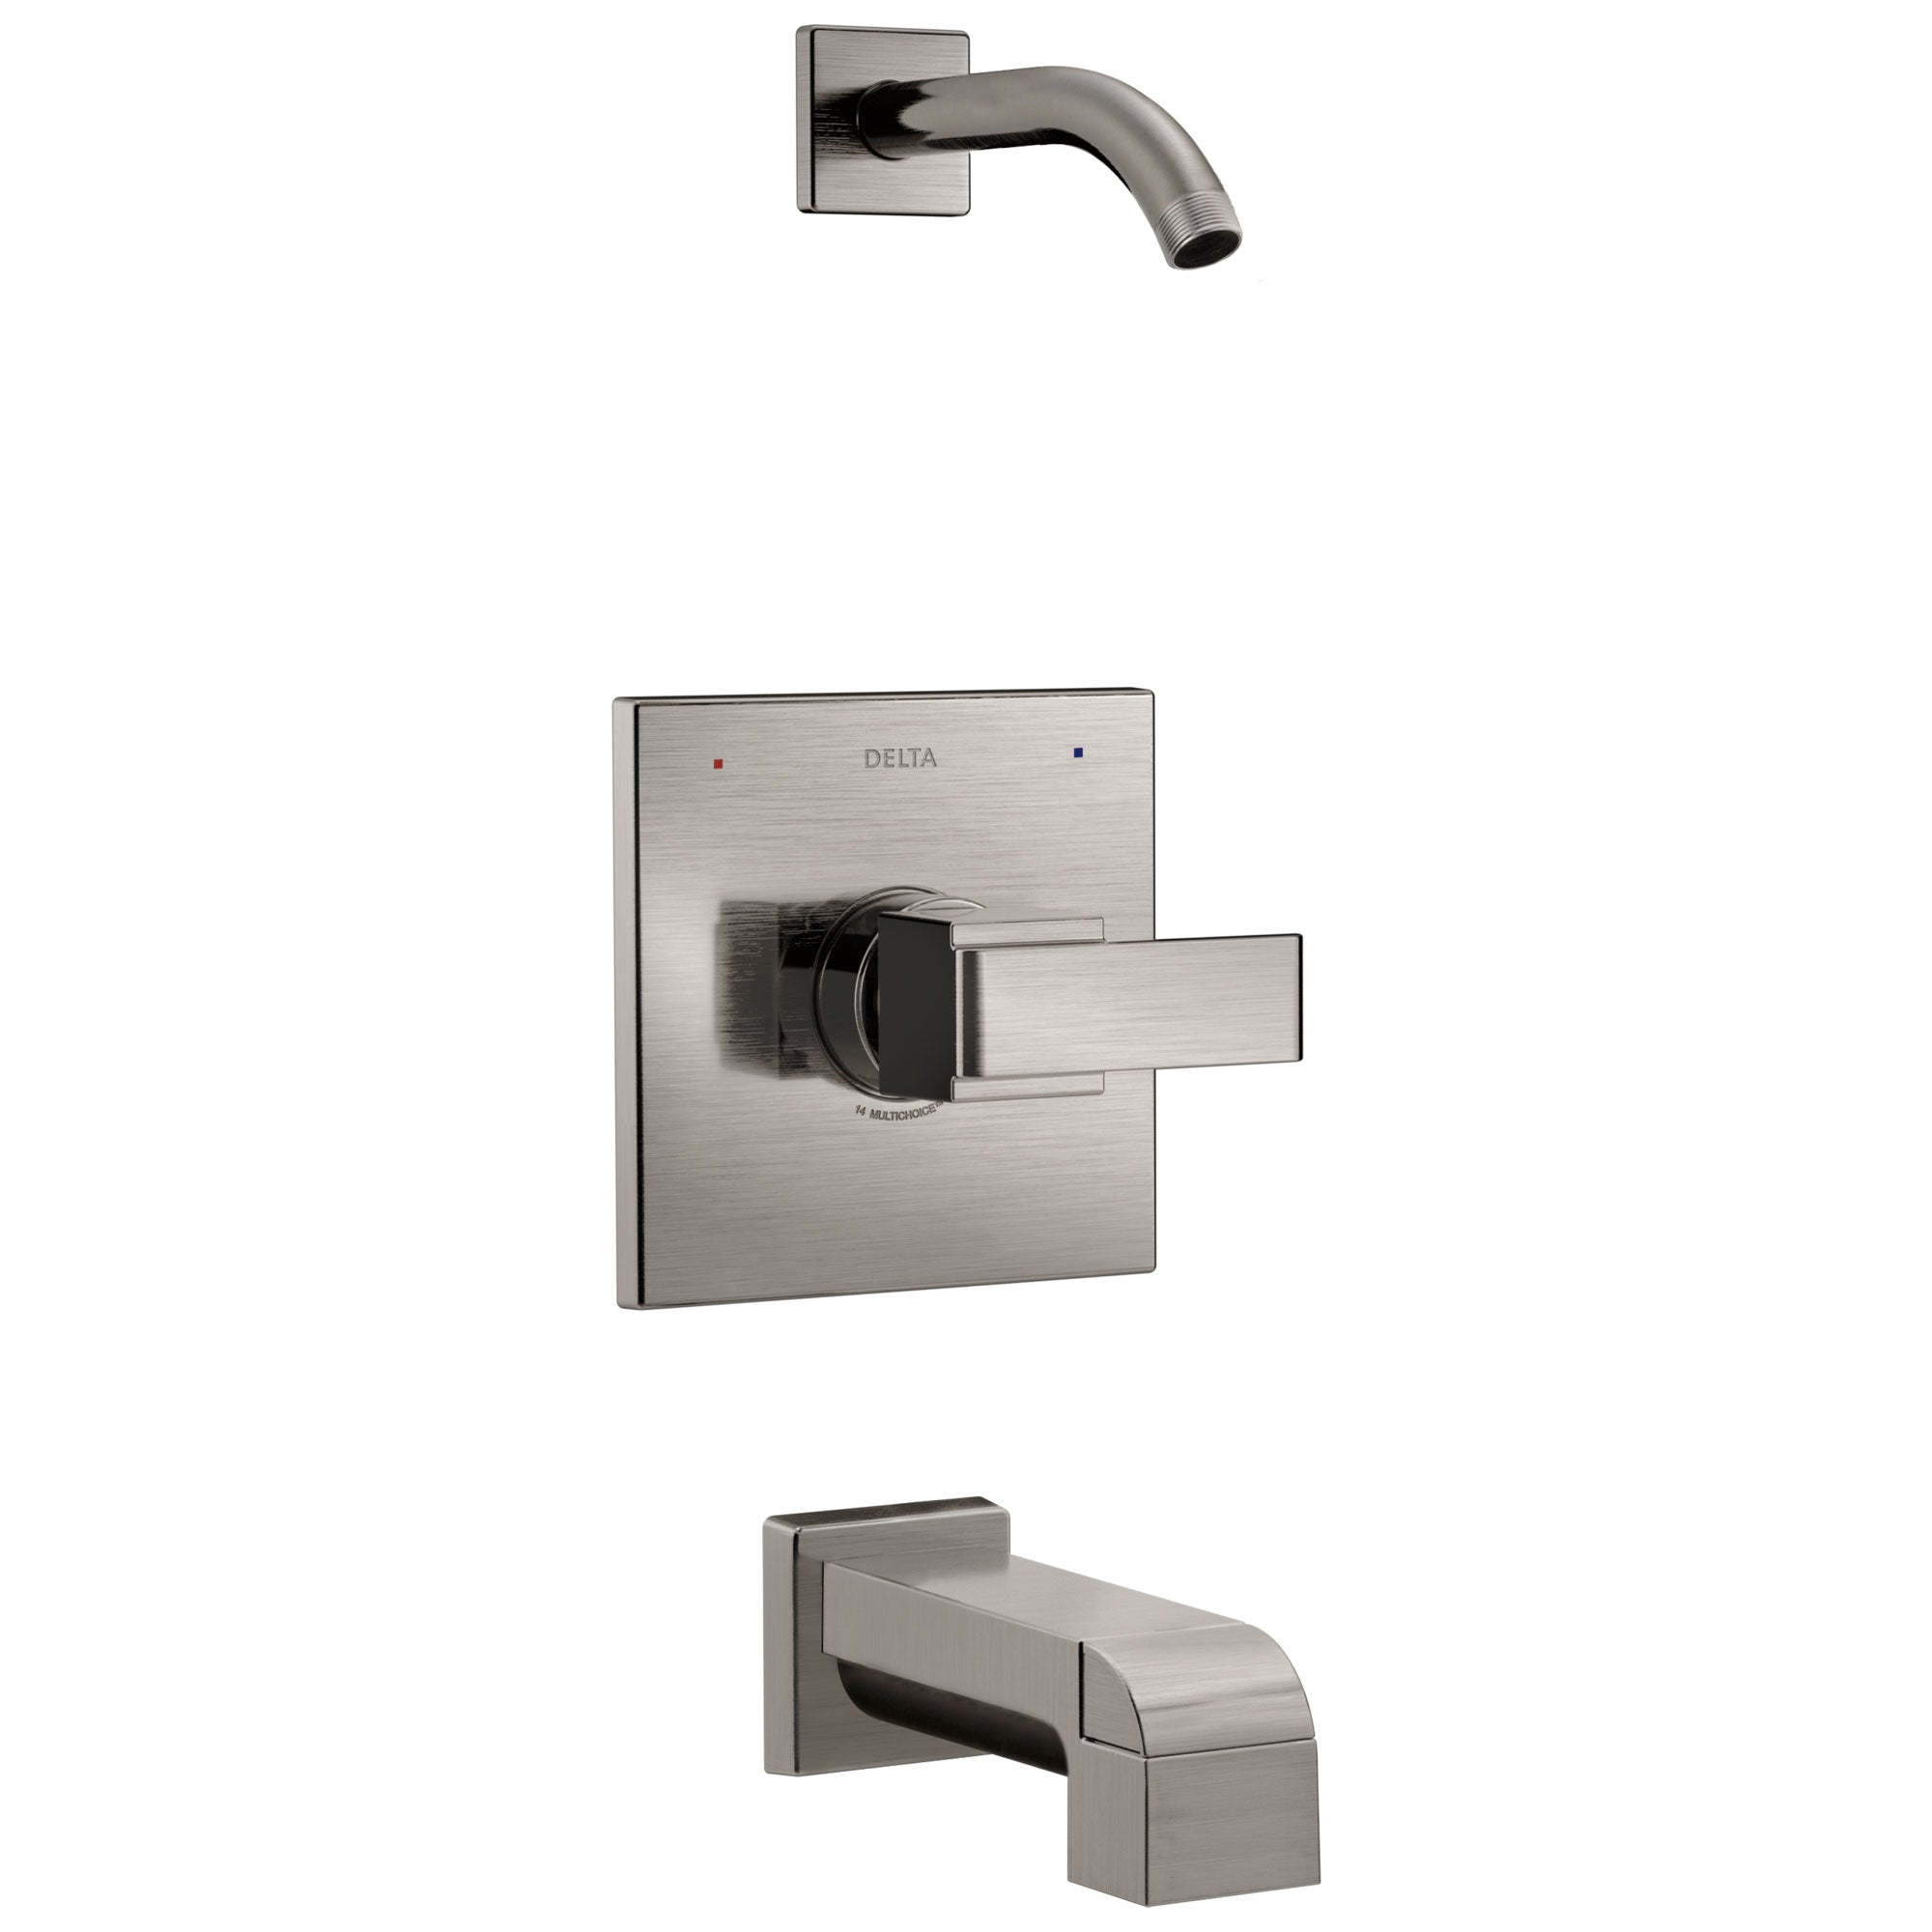 Delta Ara 1-Handle Tub and Shower Faucet Trim Kit in Stainless Steel Finish with Less Showerhead (Valve Not Included) 682972